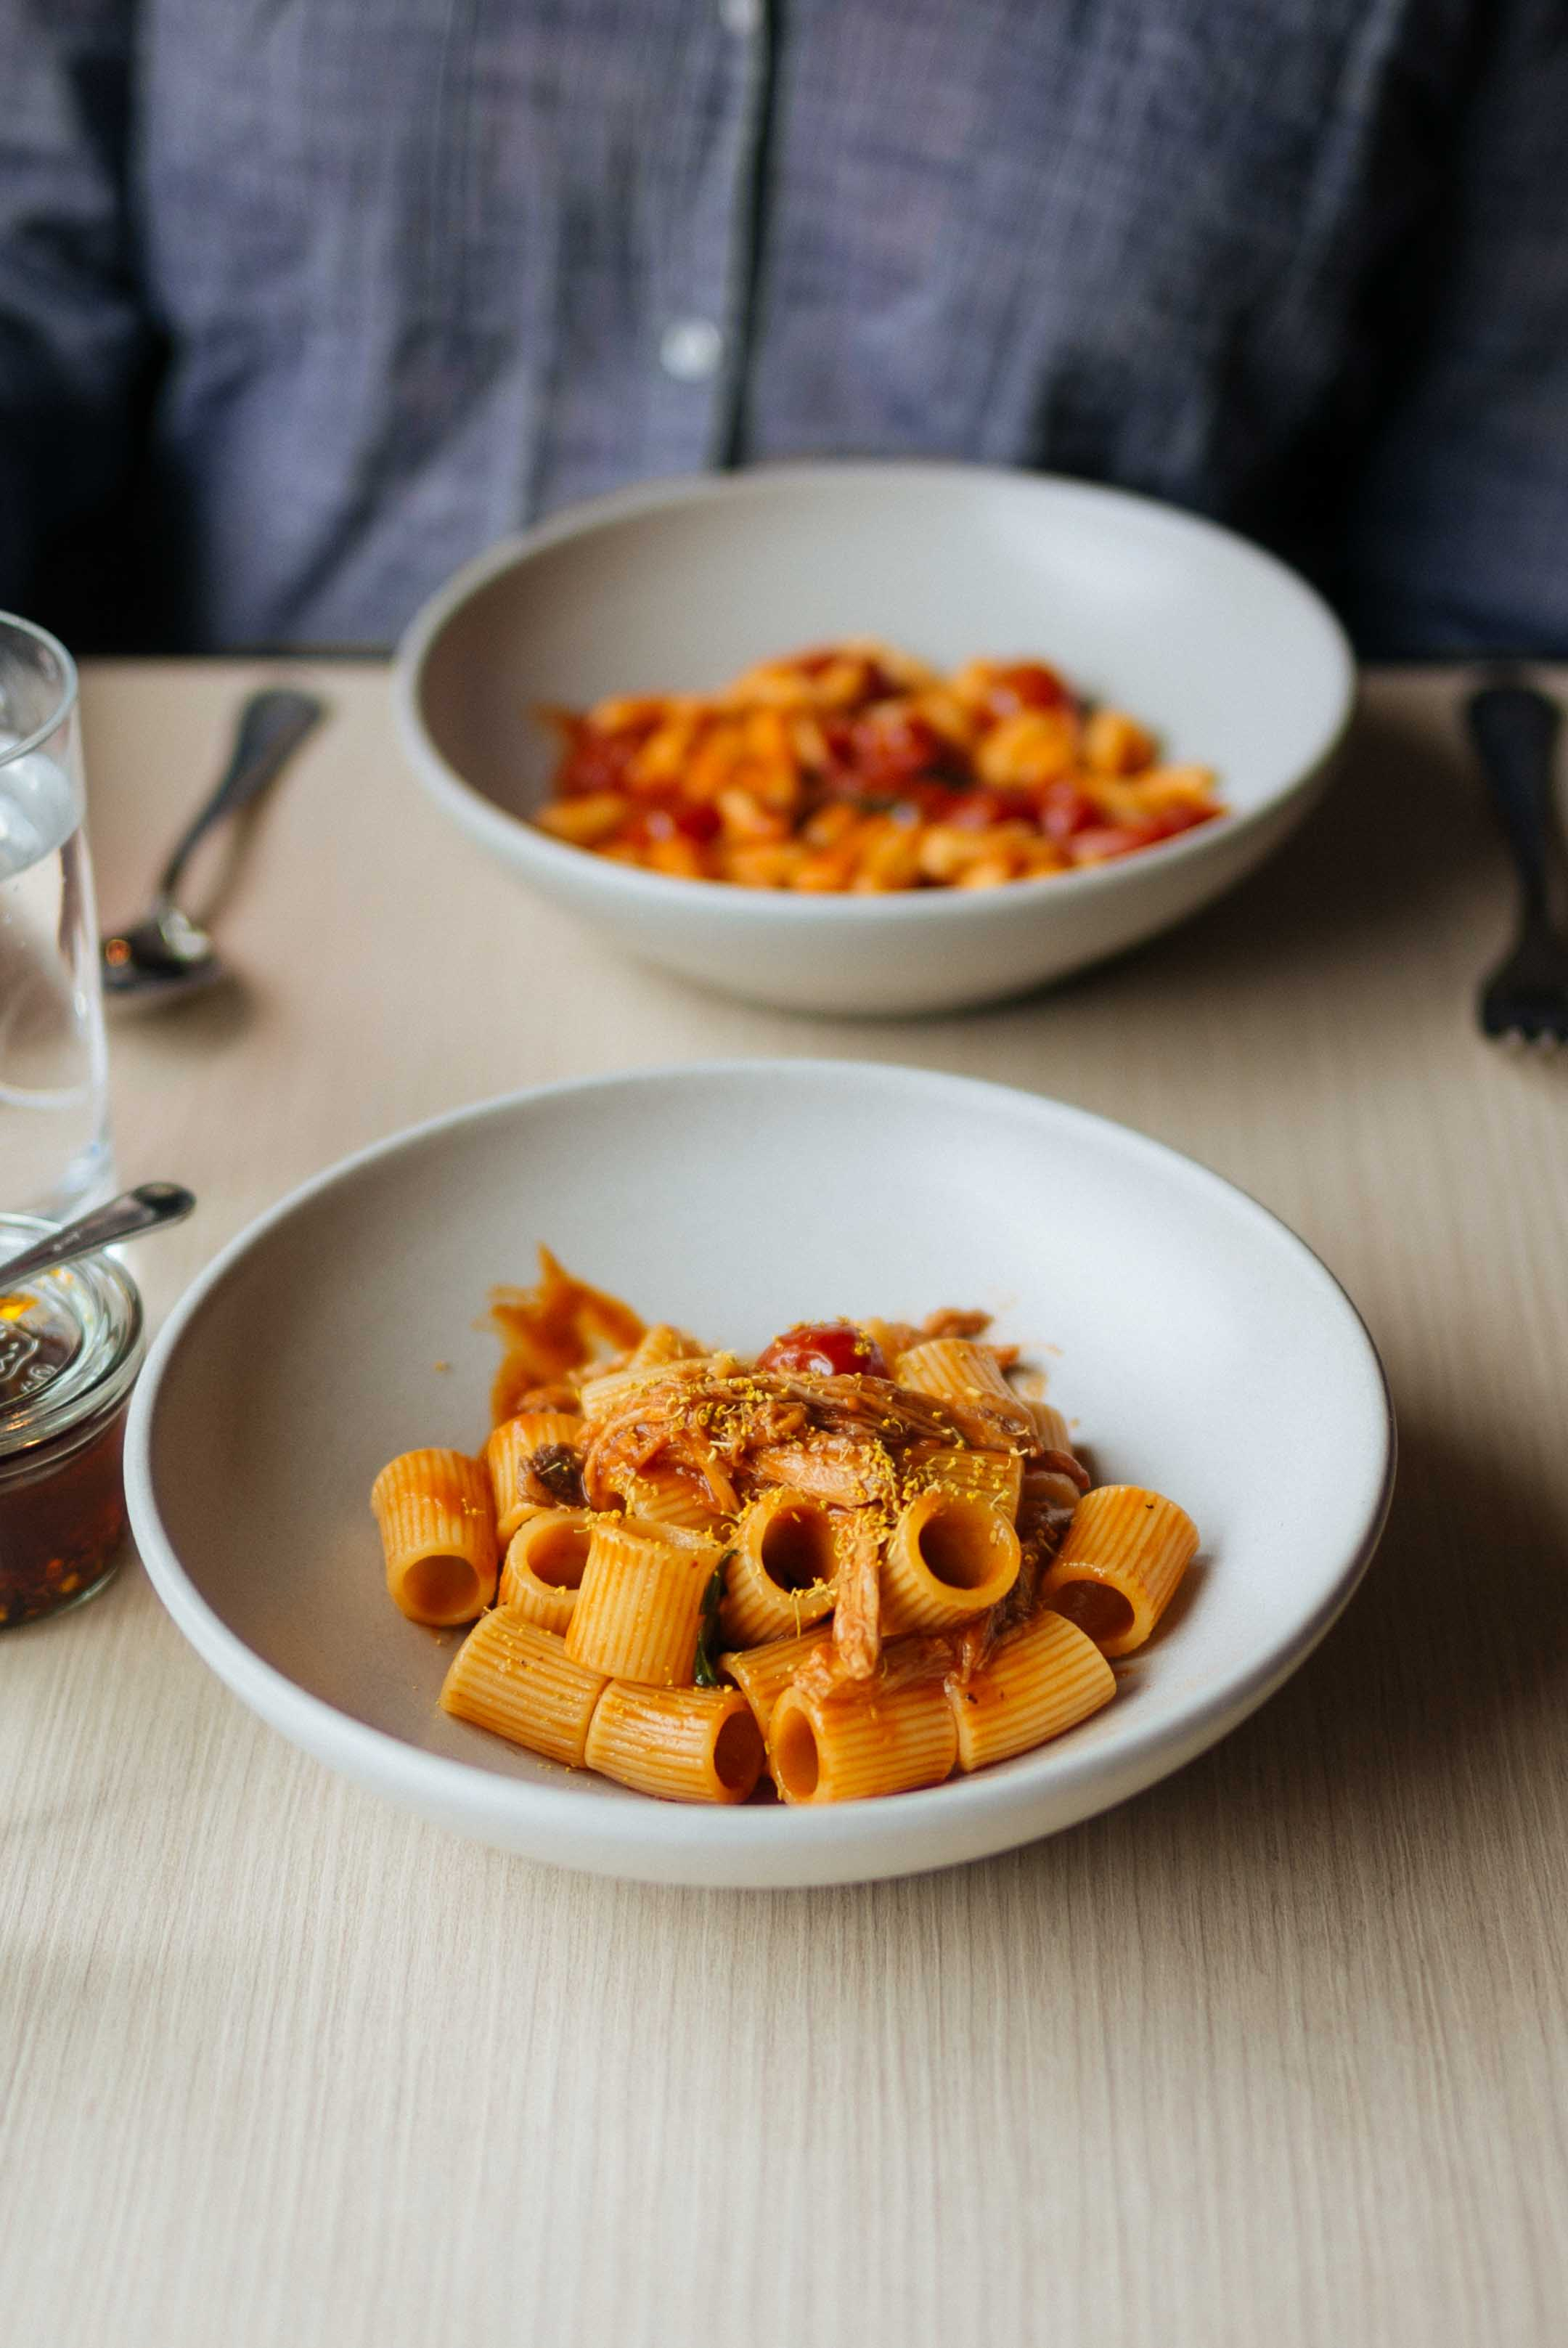 Go to Charlie Bird for the best italain lunch in new york - pick a pasta and a small plate with a glass of wine!